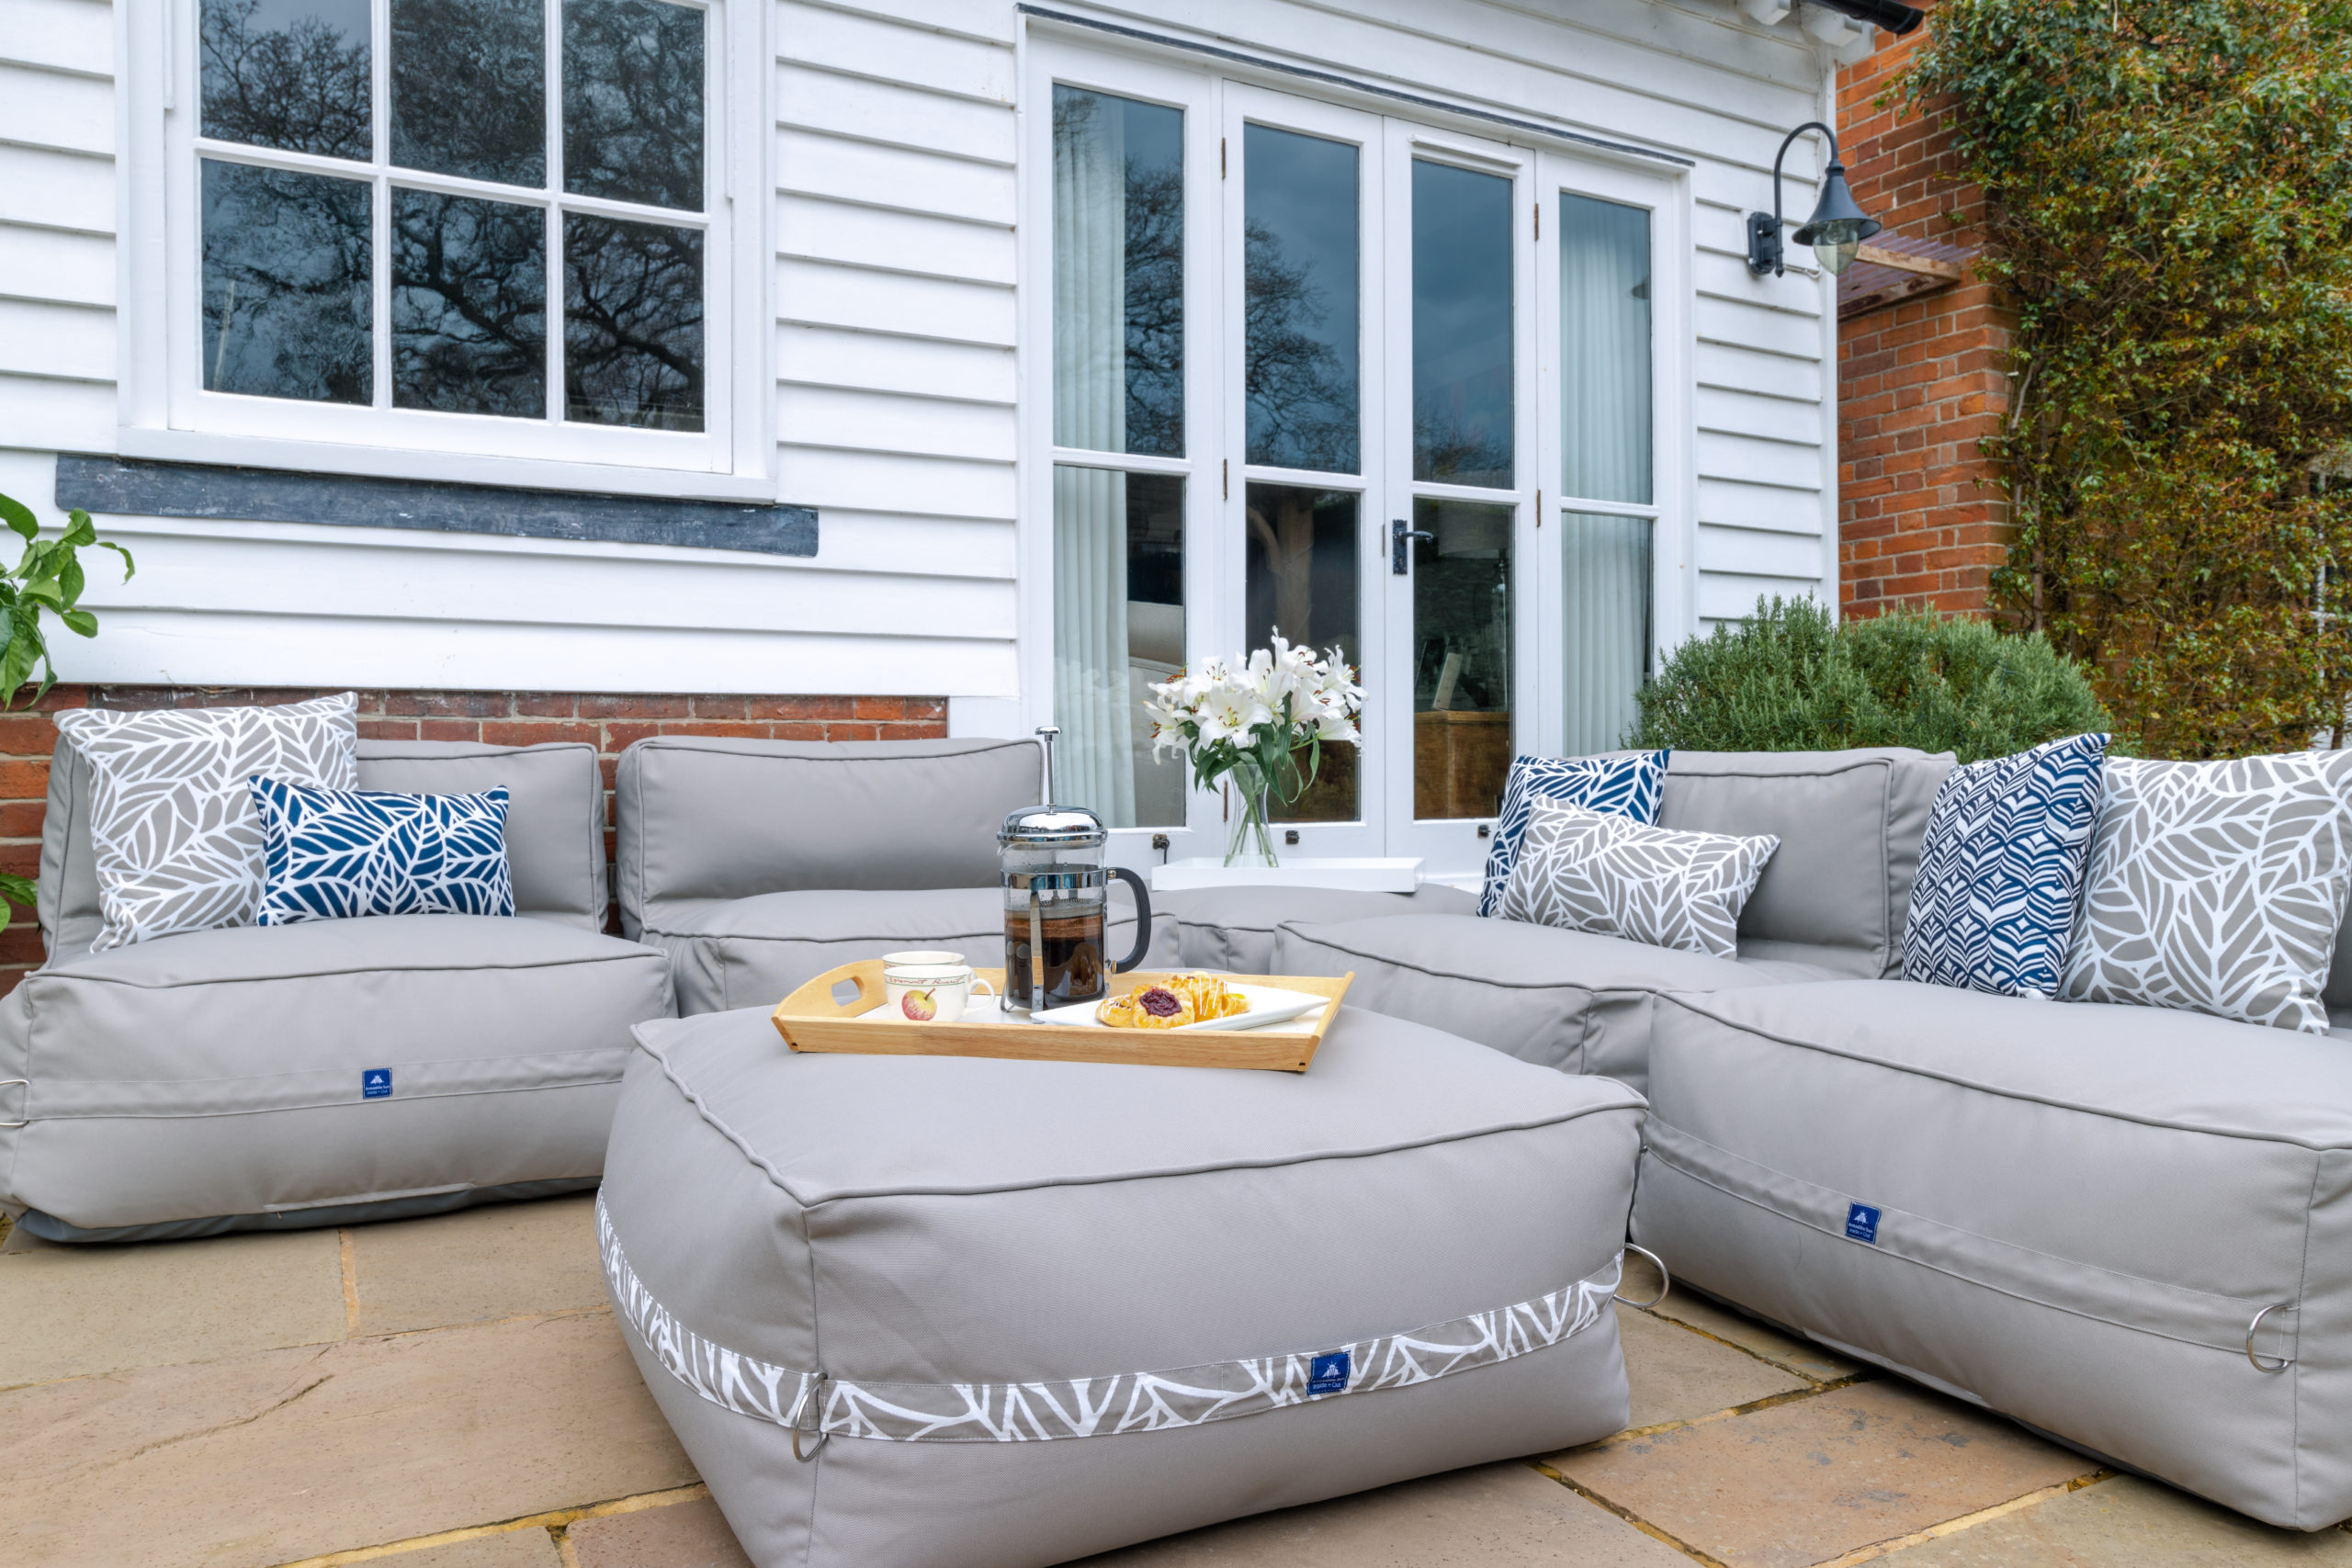 'MAGIC' fabric BBQ furniture